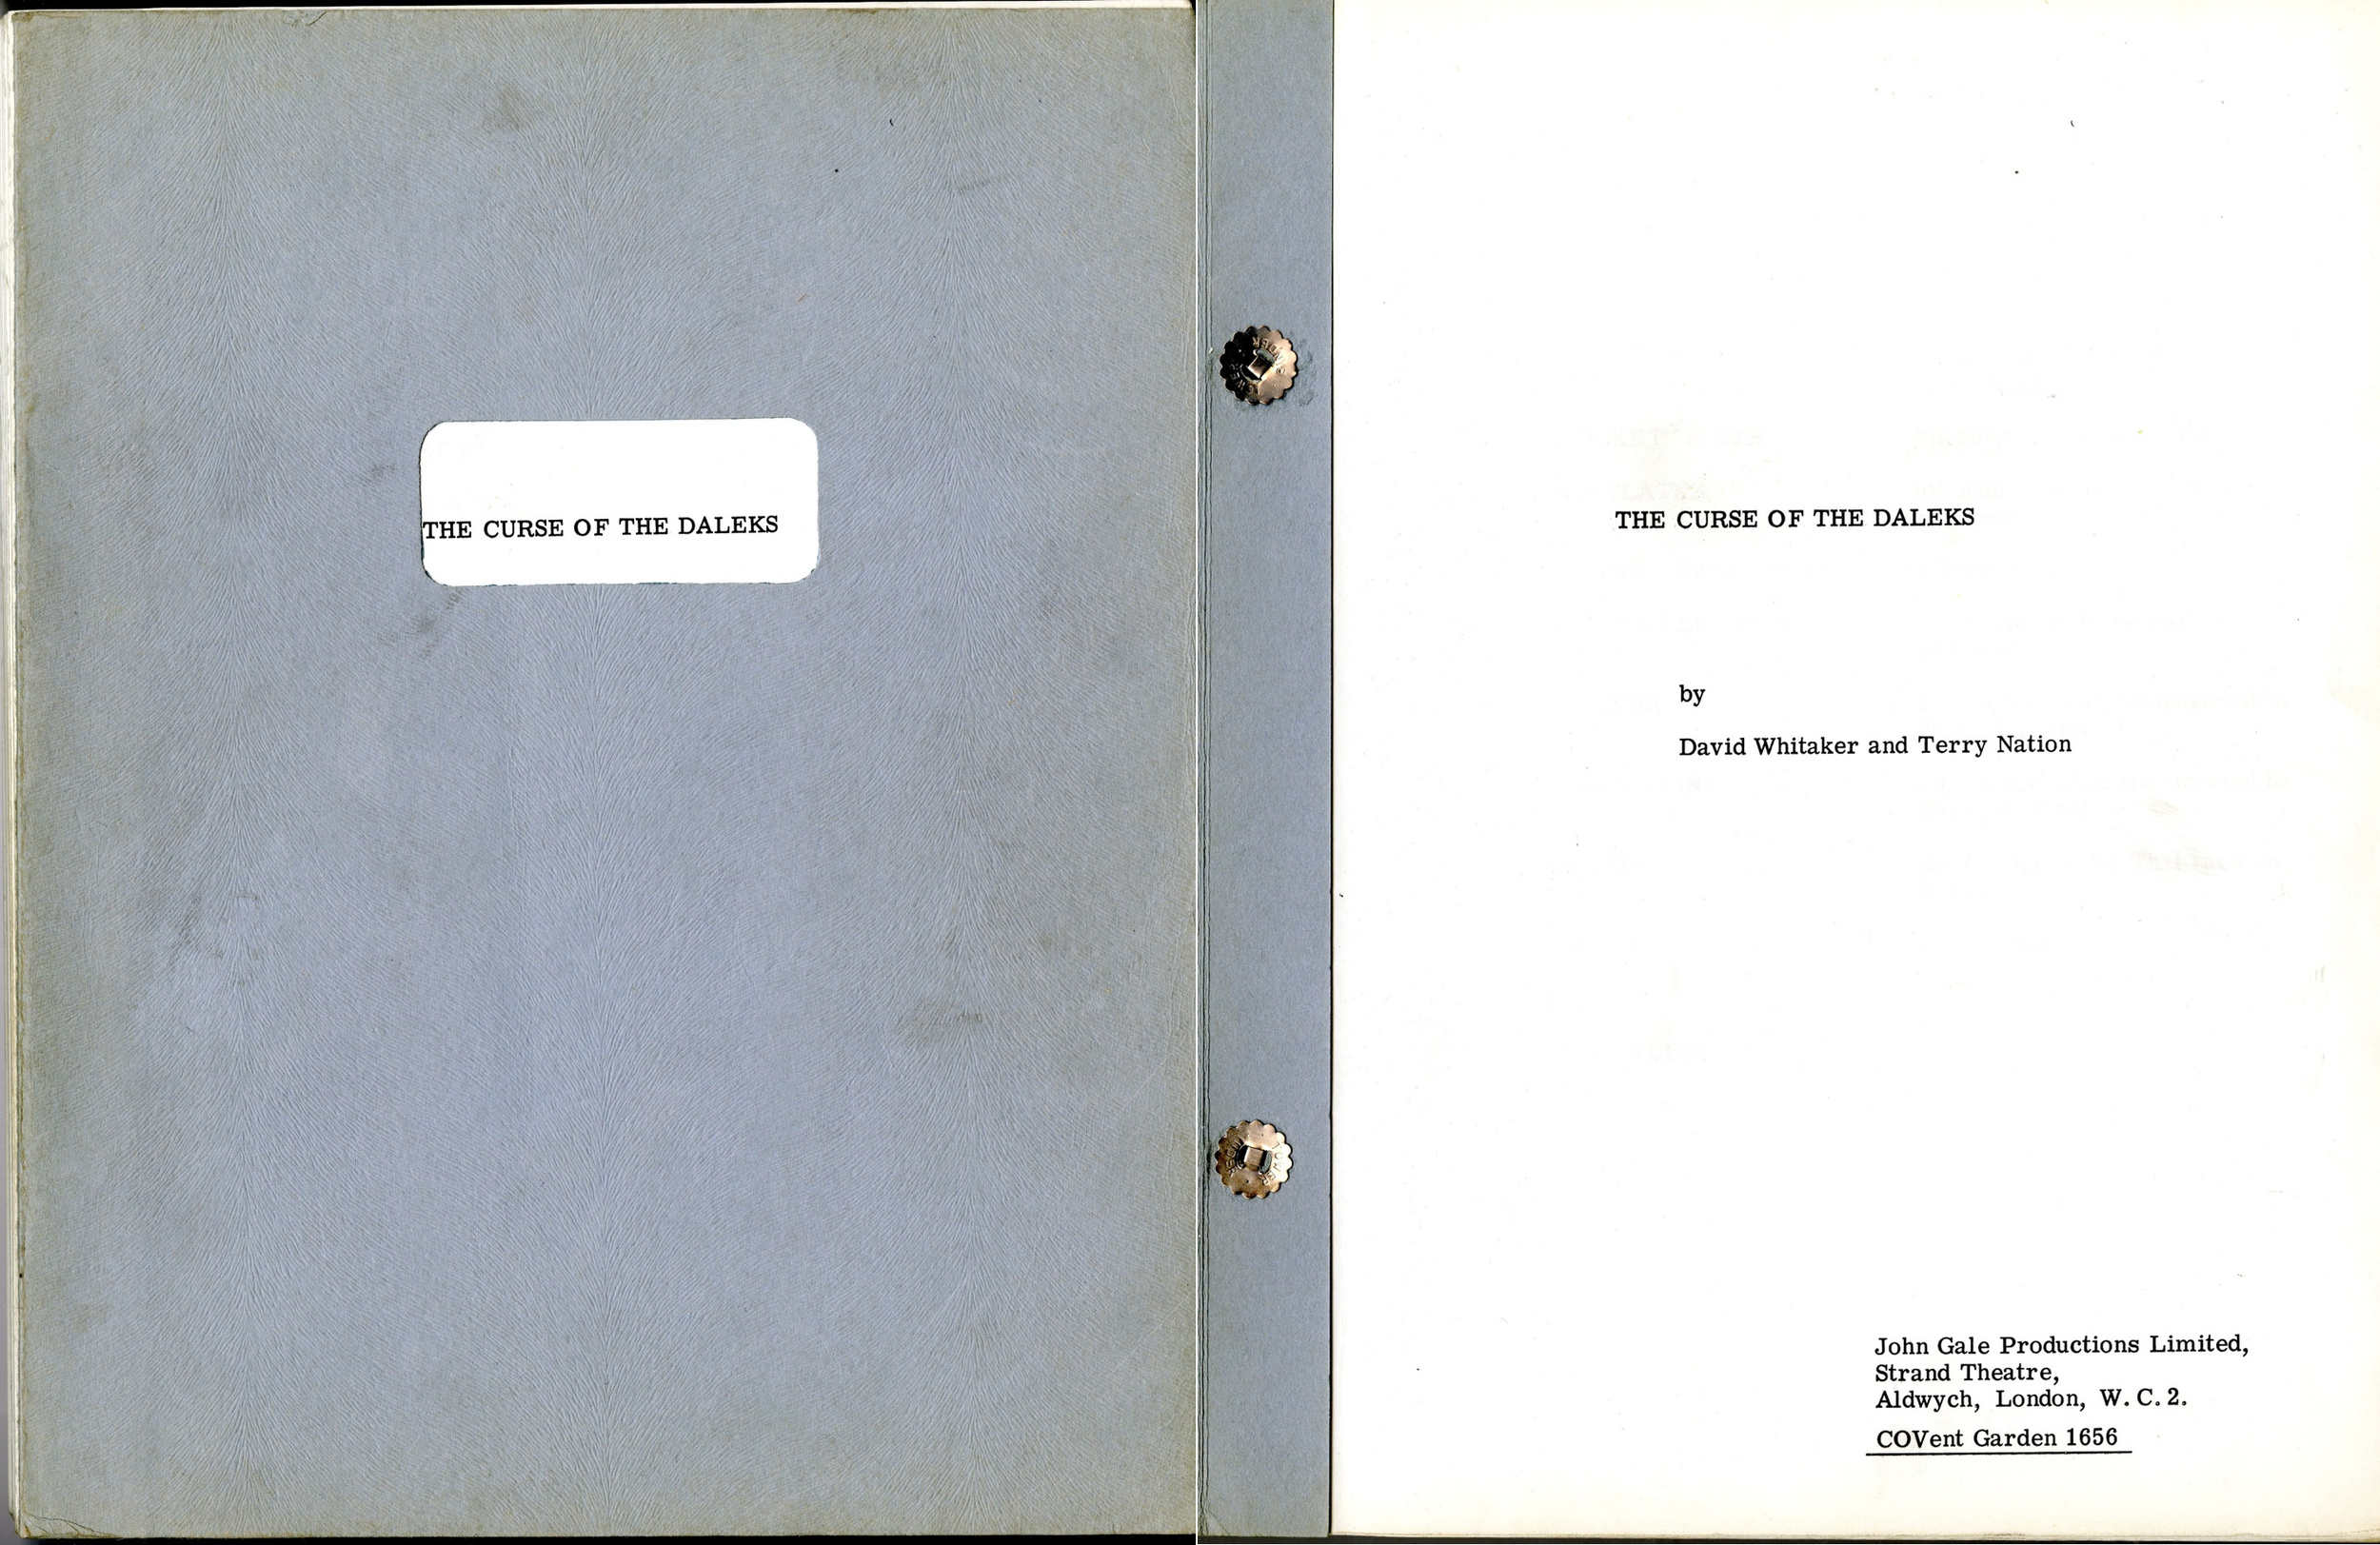 The Curse of the Daleks script (cover and title page)